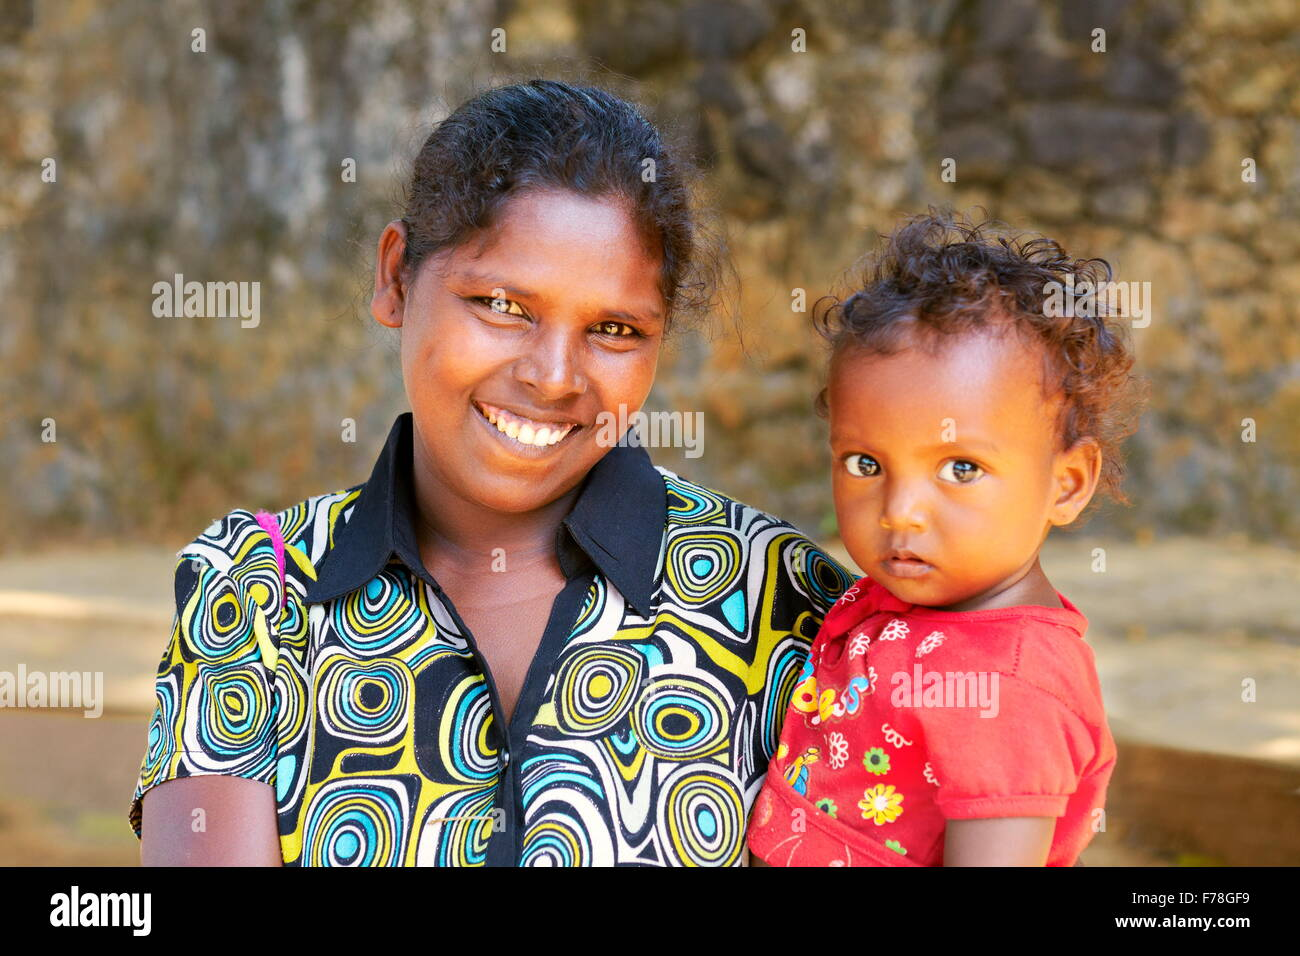 Sri Lanka – portrait of Sri Lankan young smiling woman with her baby child - Stock Image